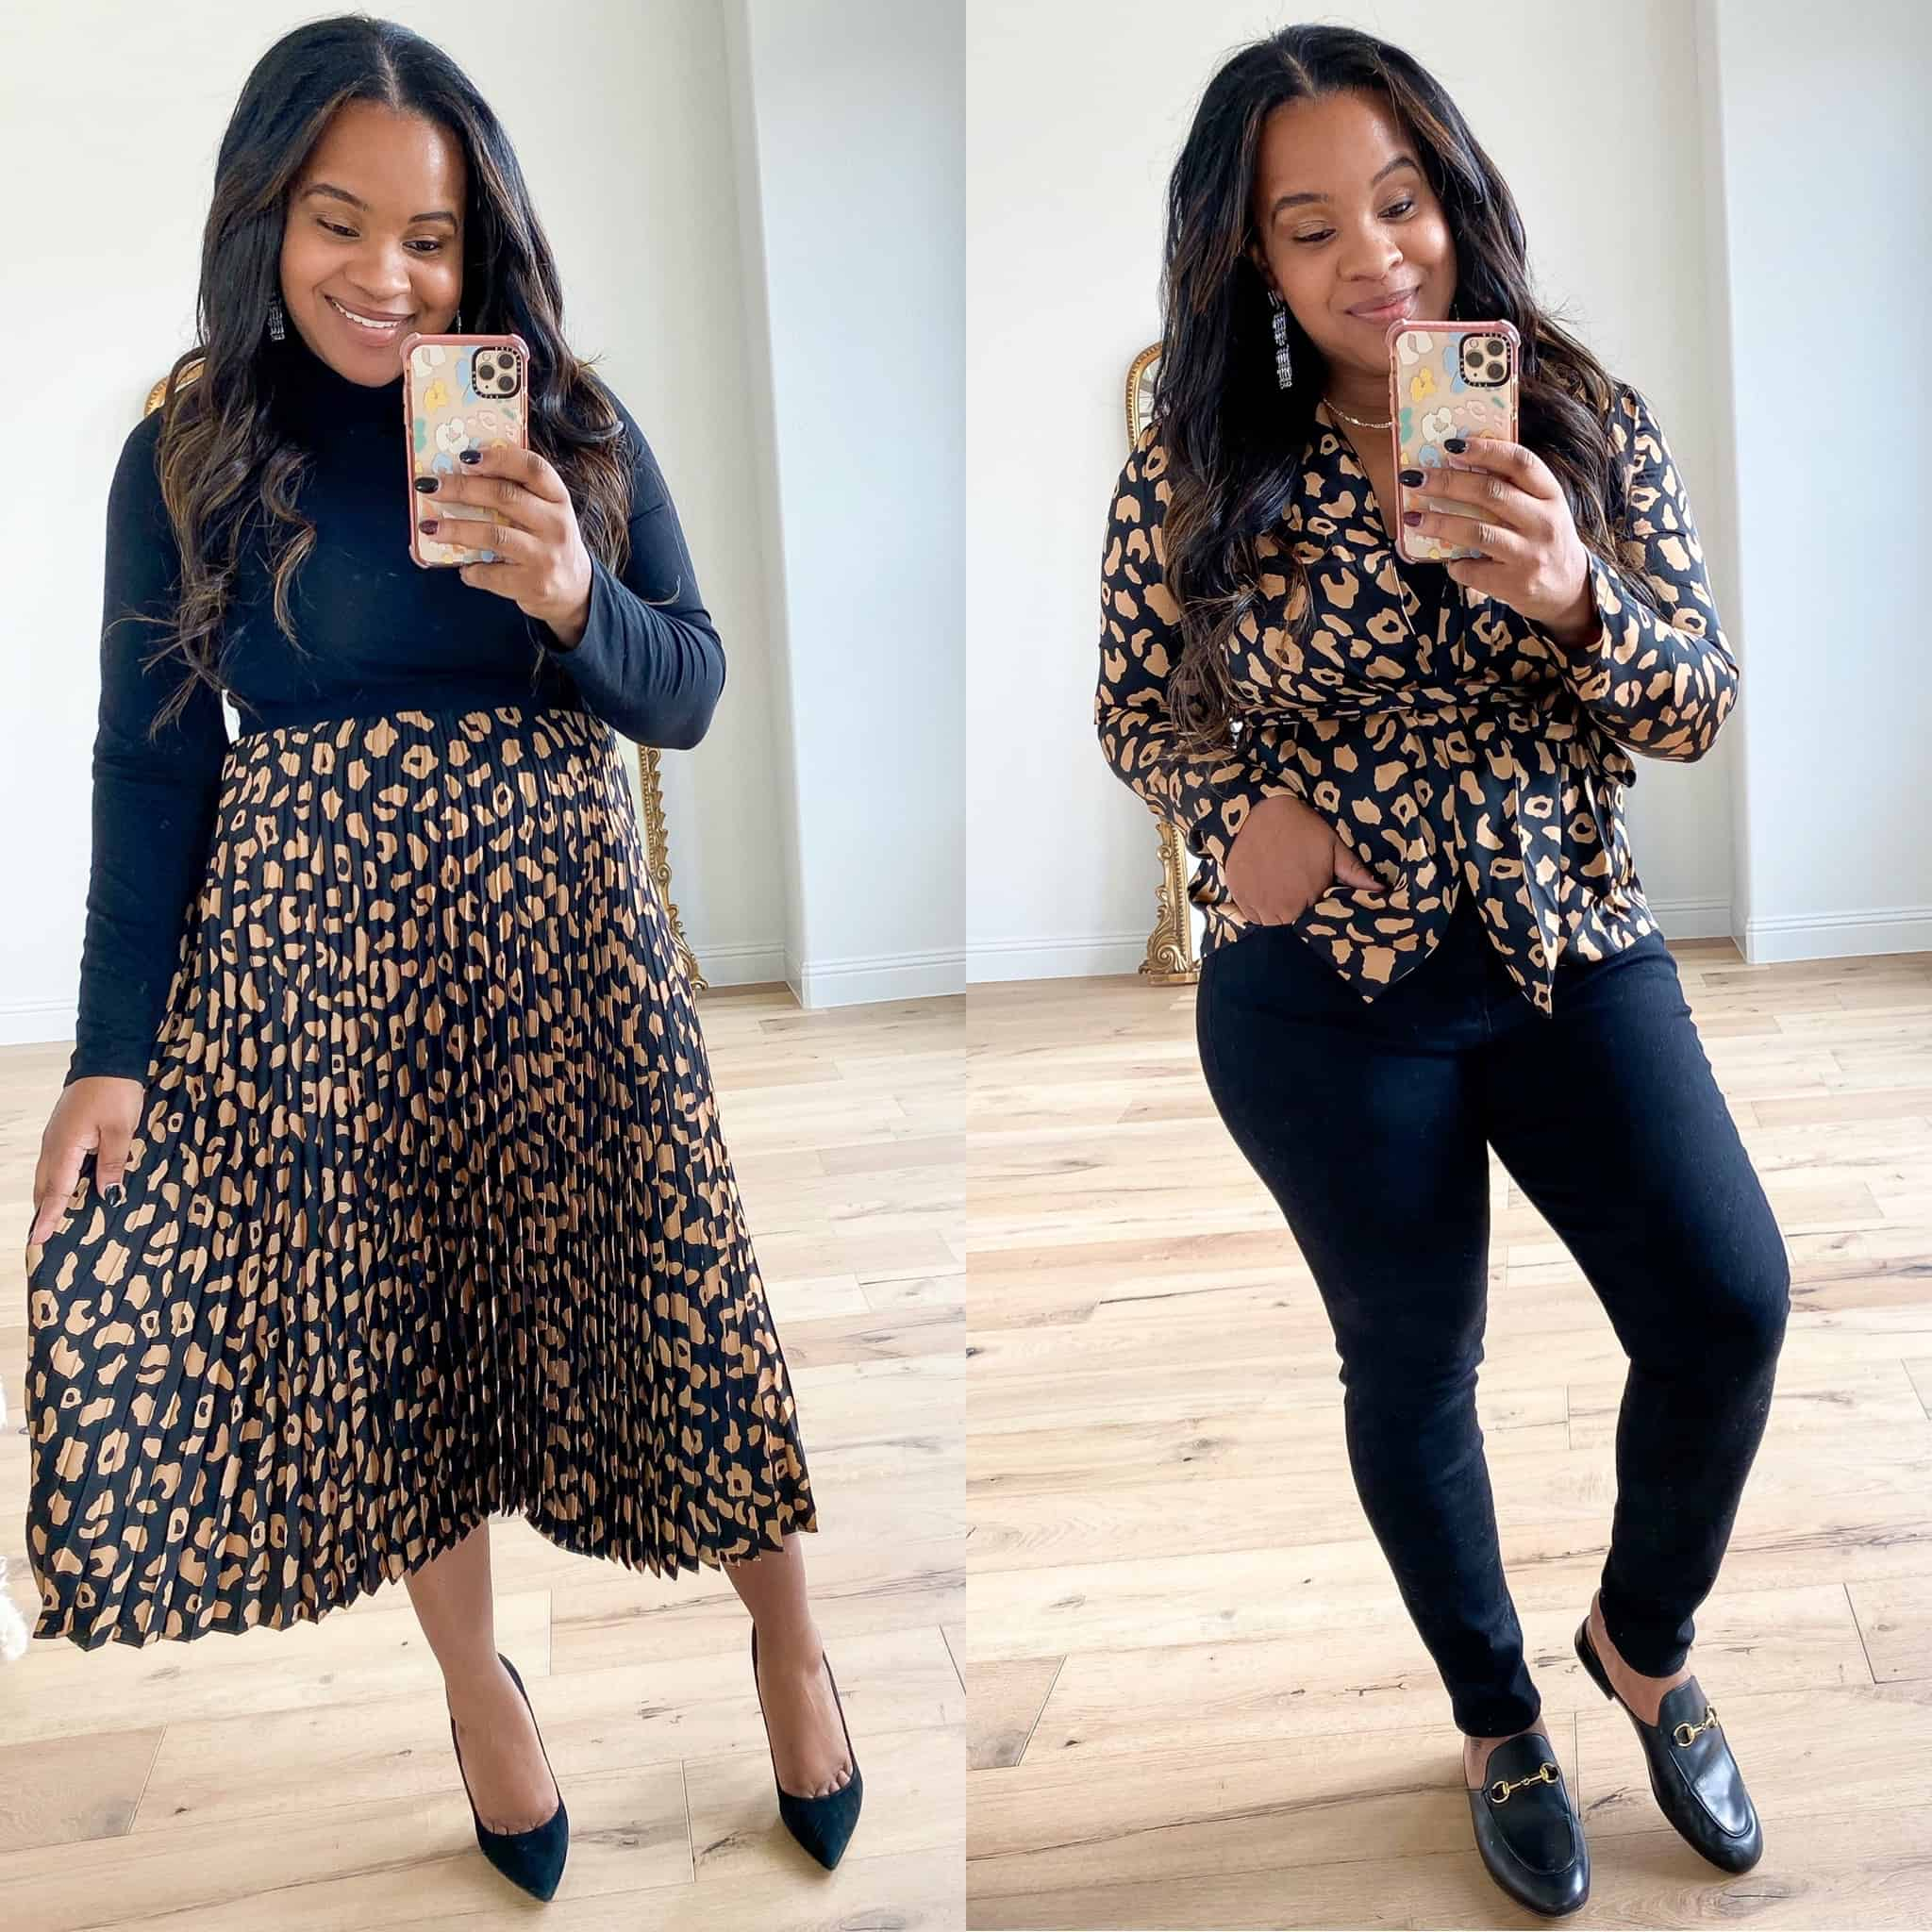 Last Minute Gift Ideas by popular Dallas life and style blog, Glamorous Versatility: collage image of a woman wearing a Walmart leopard print skirt and leopard print top.